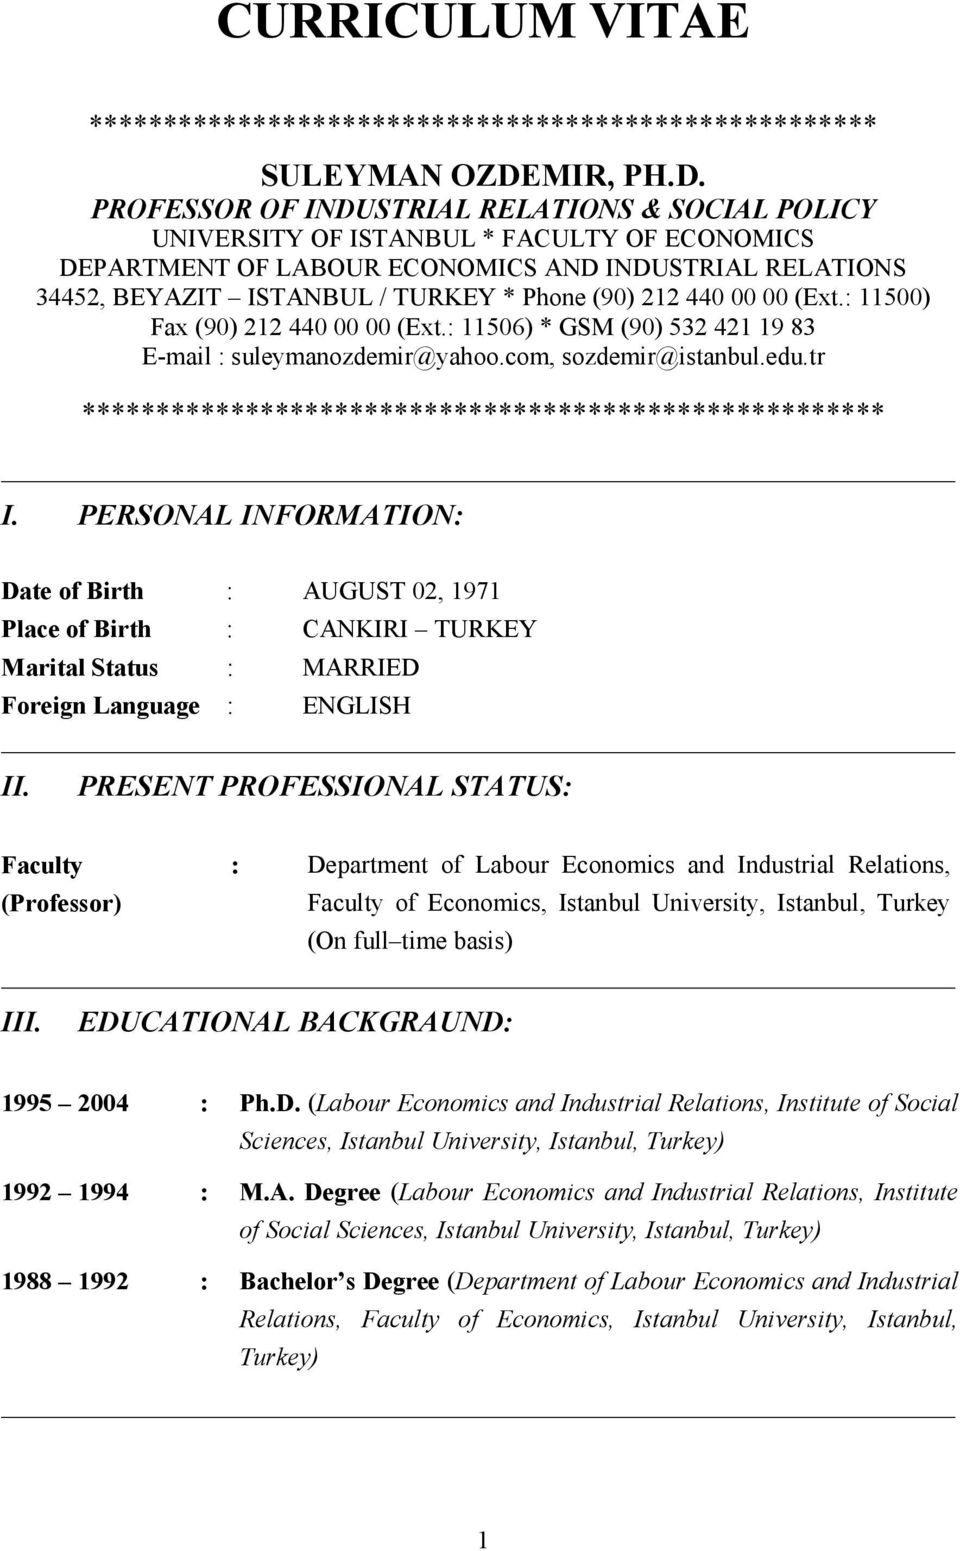 PROFESSOR OF INDUSTRIAL RELATIONS & SOCIAL POLICY UNIVERSITY OF ISTANBUL * FACULTY OF ECONOMICS DEPARTMENT OF LABOUR ECONOMICS AND INDUSTRIAL RELATIONS 4452, BEYAZIT ISTANBUL / TURKEY * Phone (90)